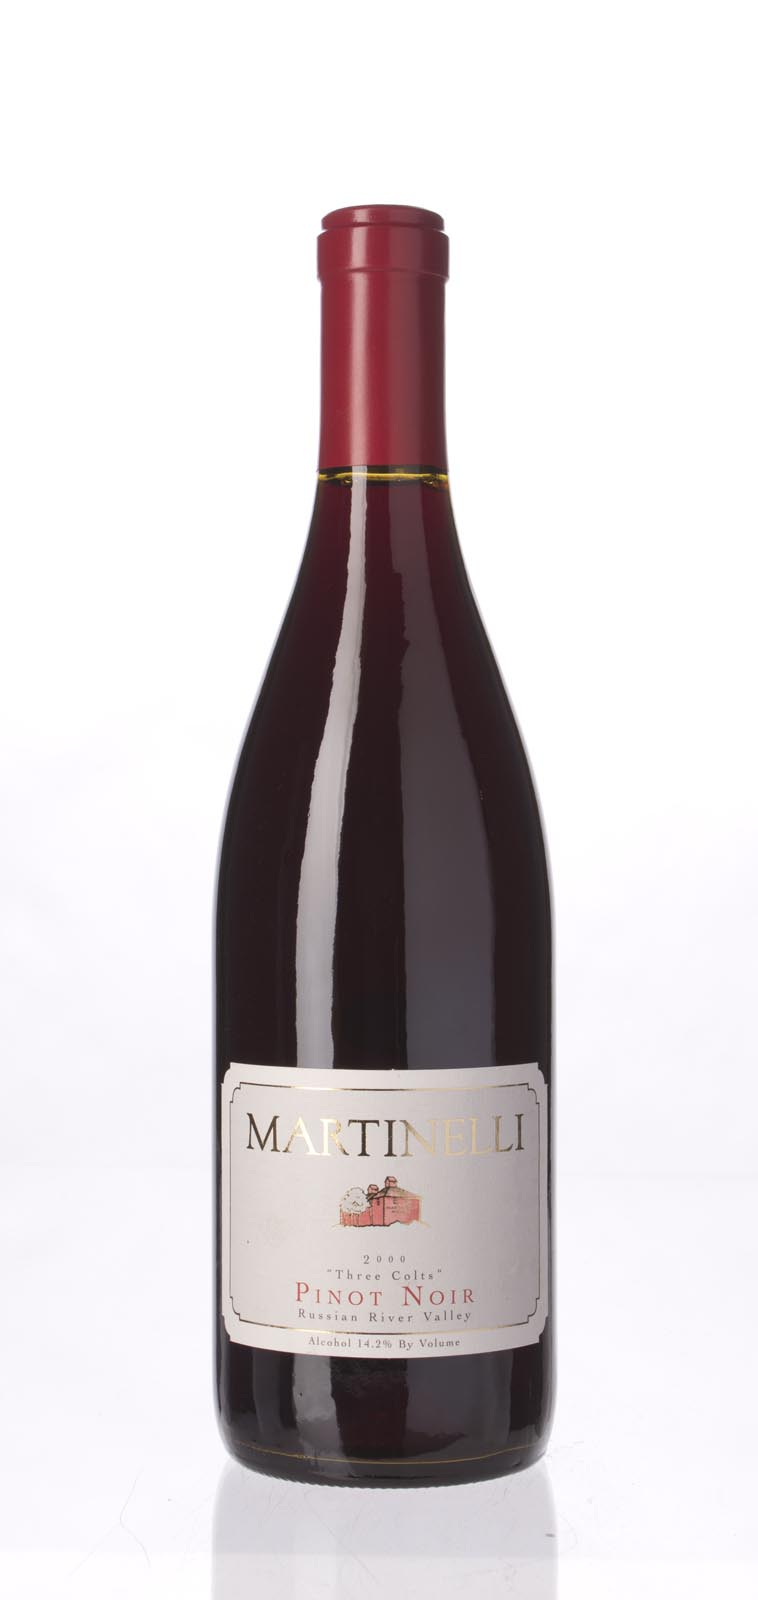 Martinelli Pinot Noir Three Colts Vineyard 2000, 750mL (WA89) from The BPW - Merchants of rare and fine wines.